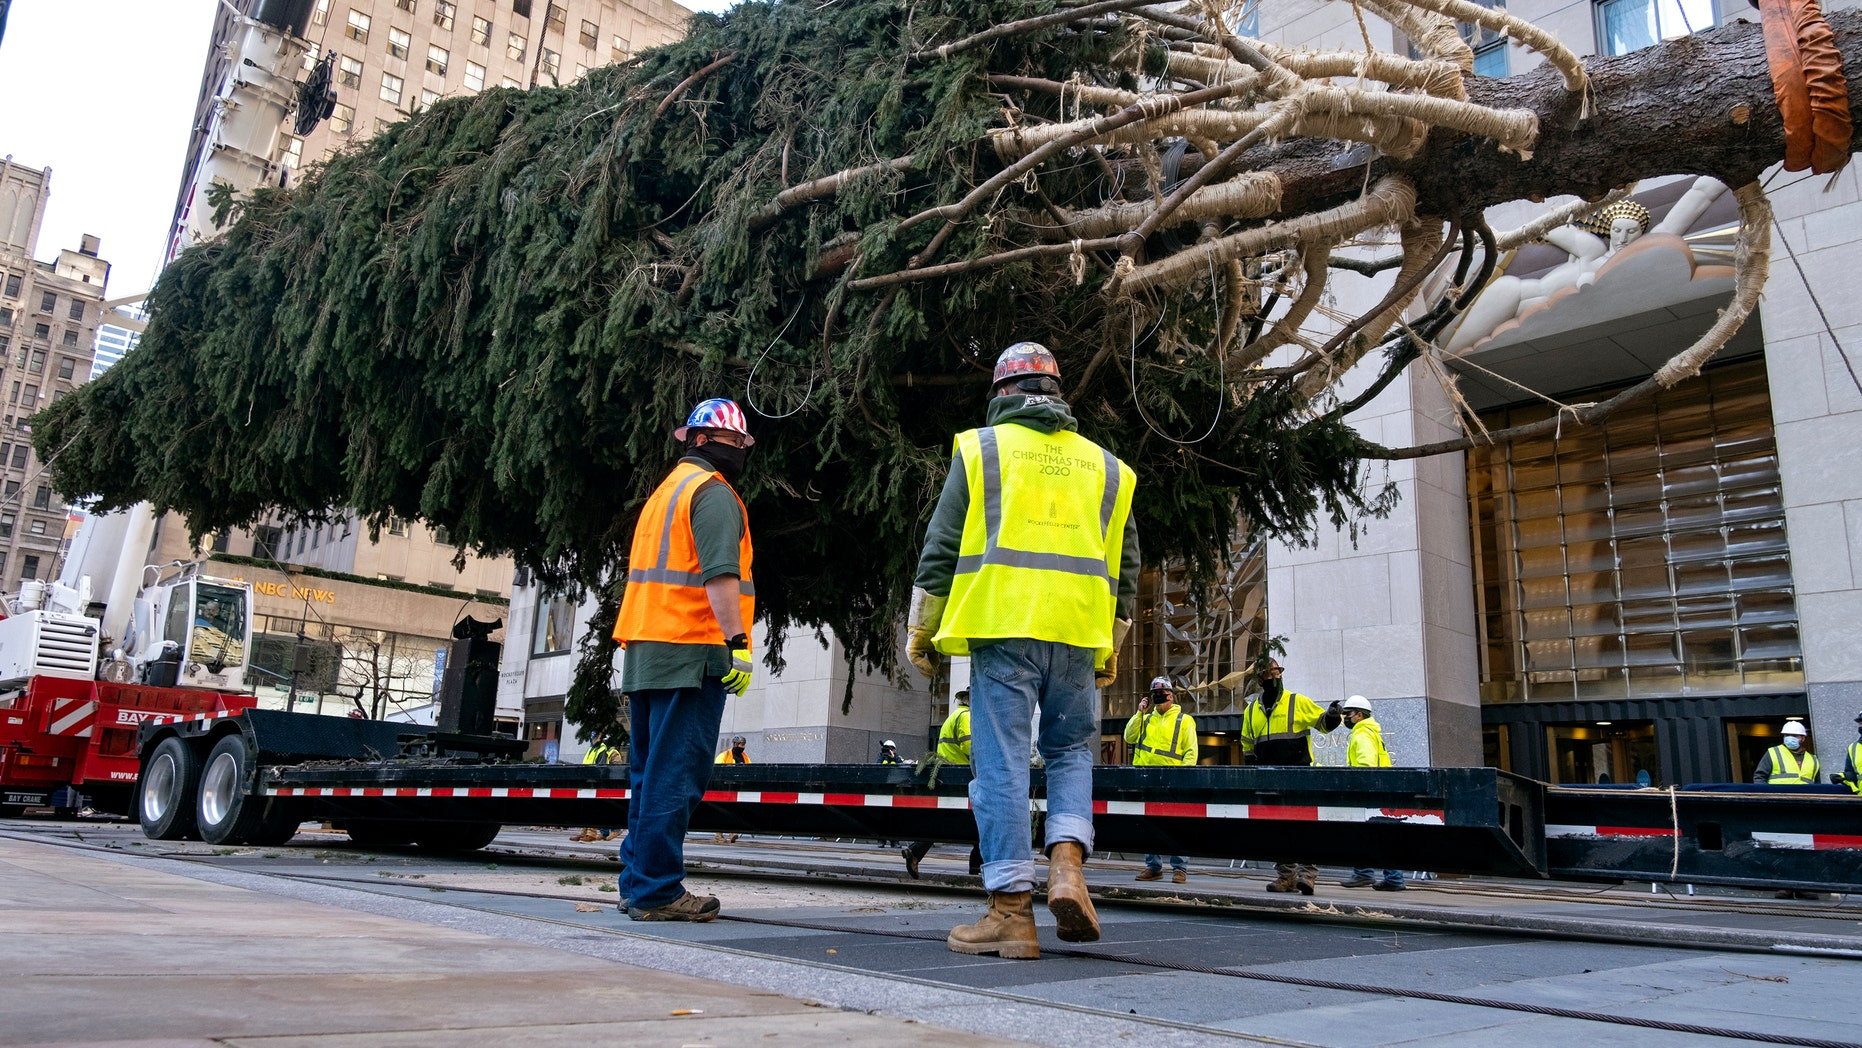 The 2020 Rockefeller Center Christmas tree, a 75-foot tall Norway Spruce that was acquired in Oneonta, N.Y., is prepared for setting on a platform at Rockefeller Center Nov. 14, in New York. (AP Photo/Craig Ruttle)